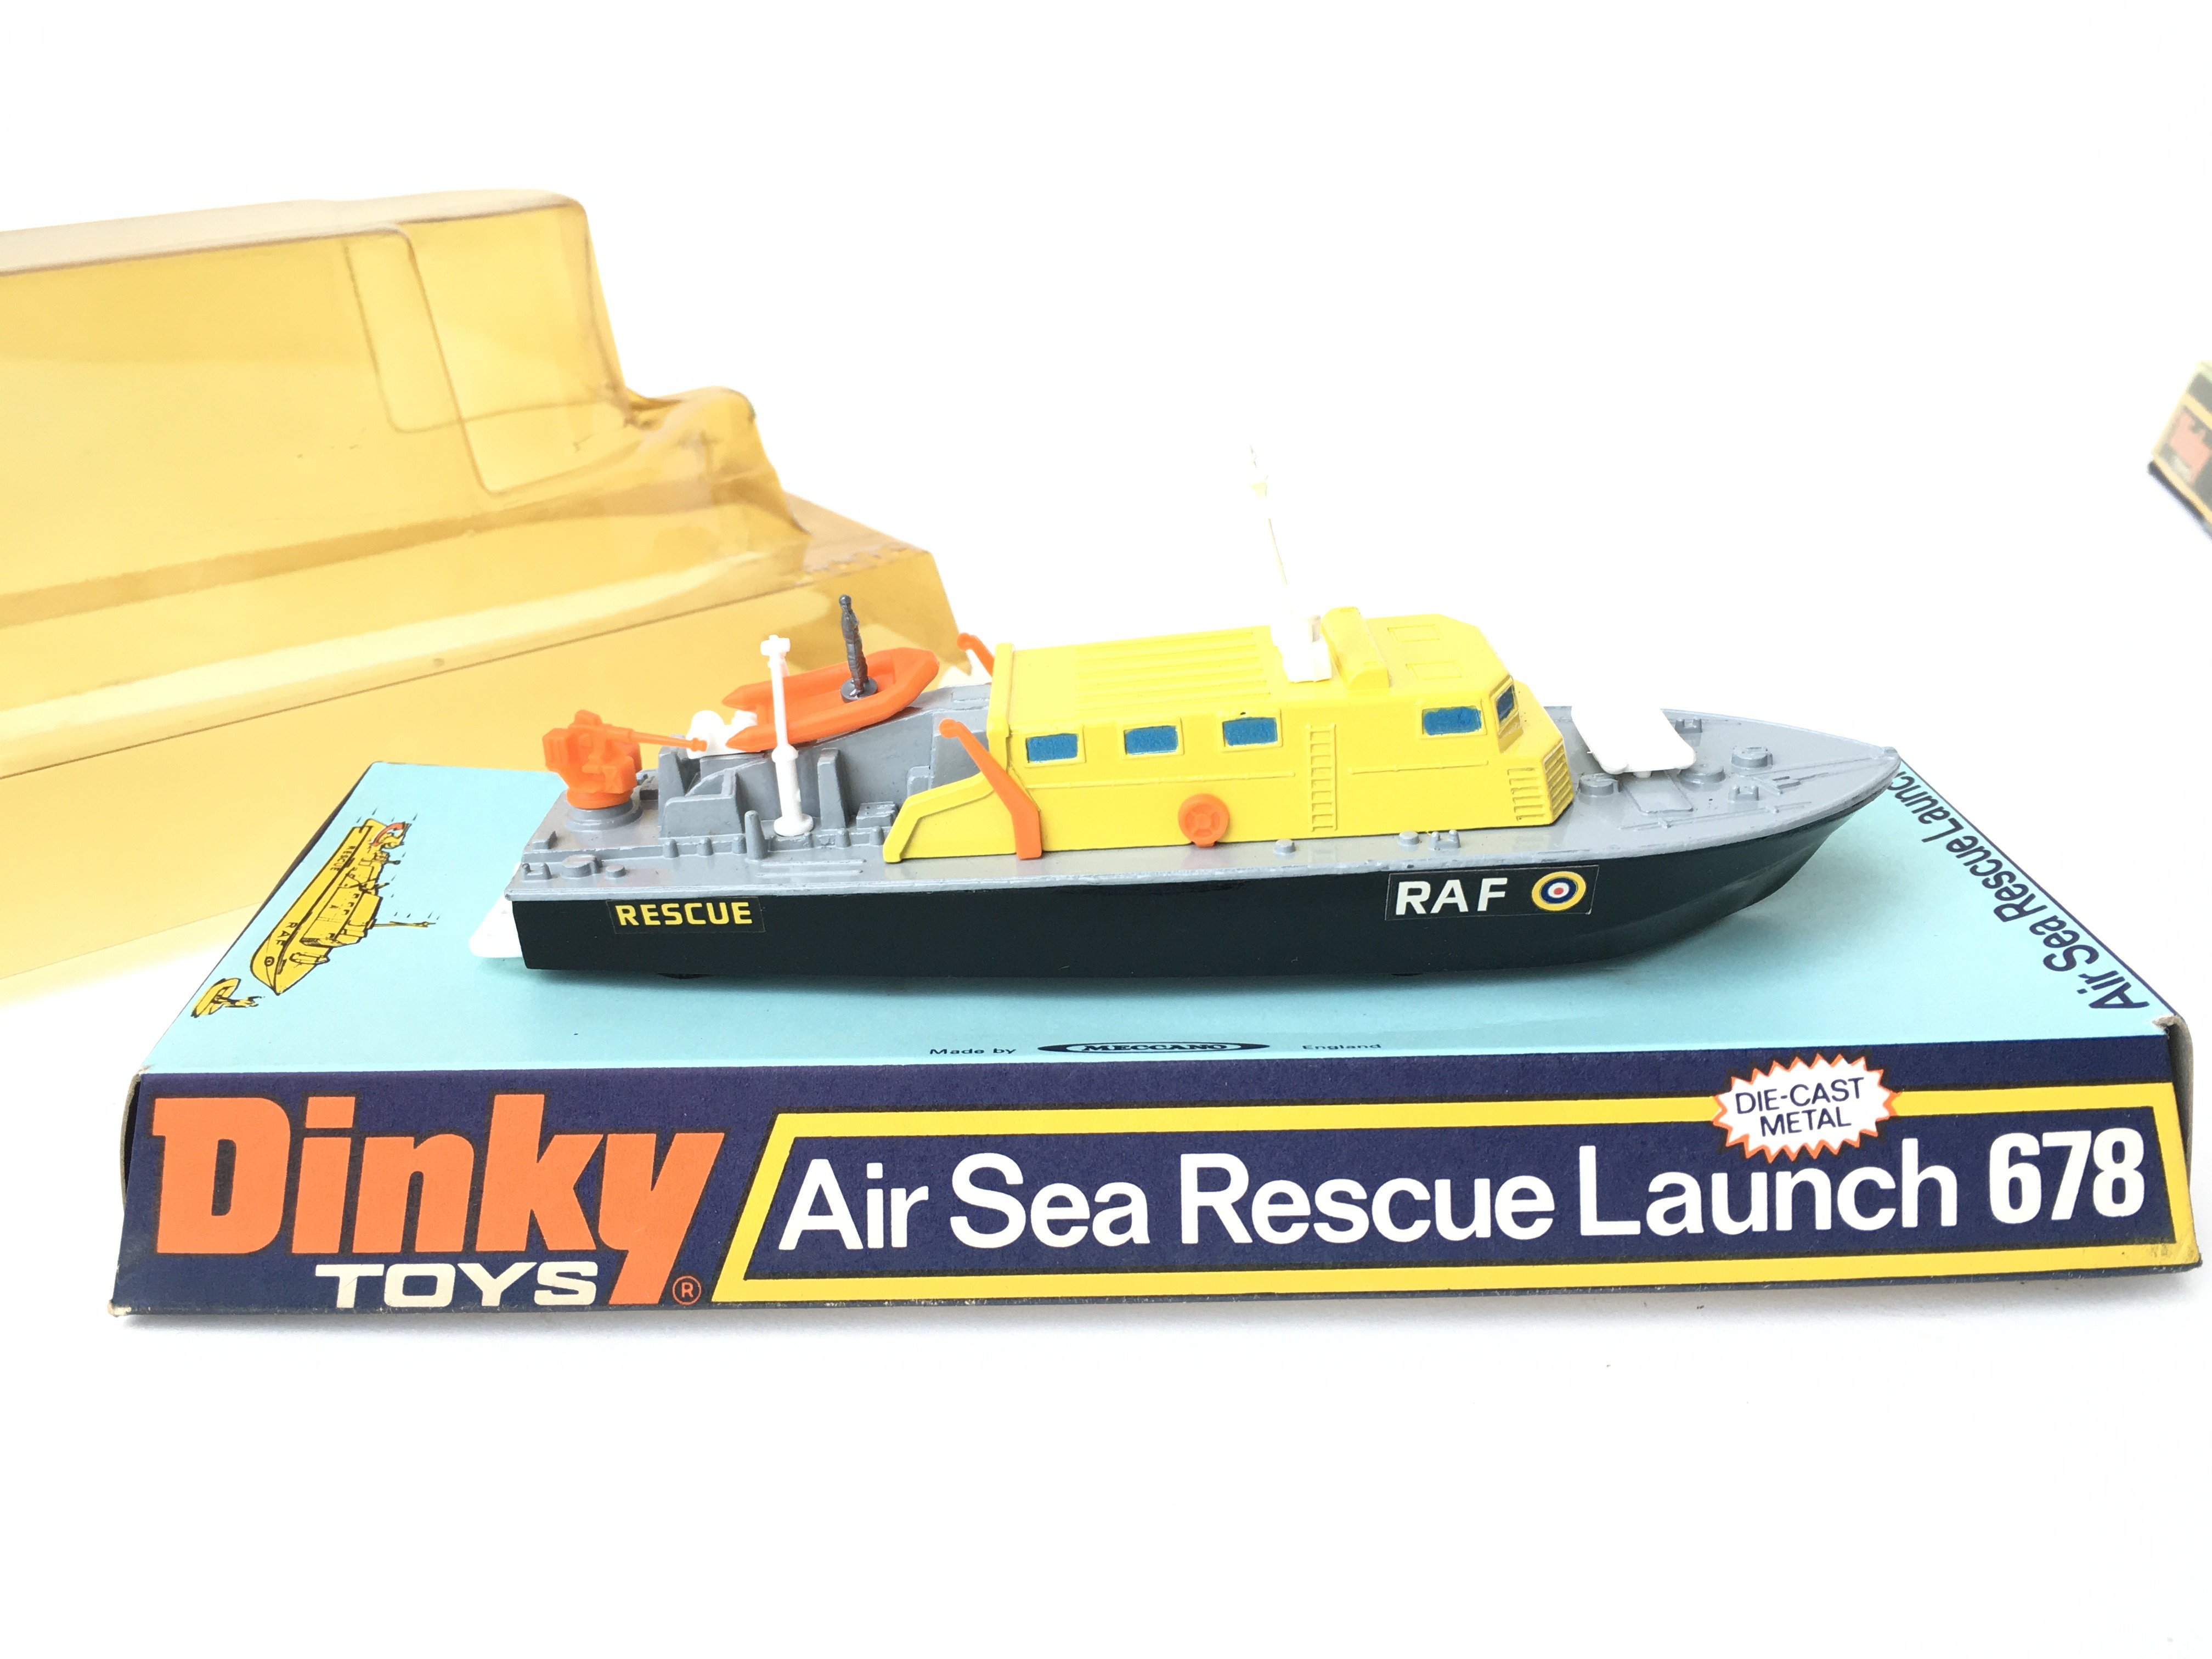 2 X Boxed Dinky Air Sea Rescue Launch #678 and a U - Image 2 of 3